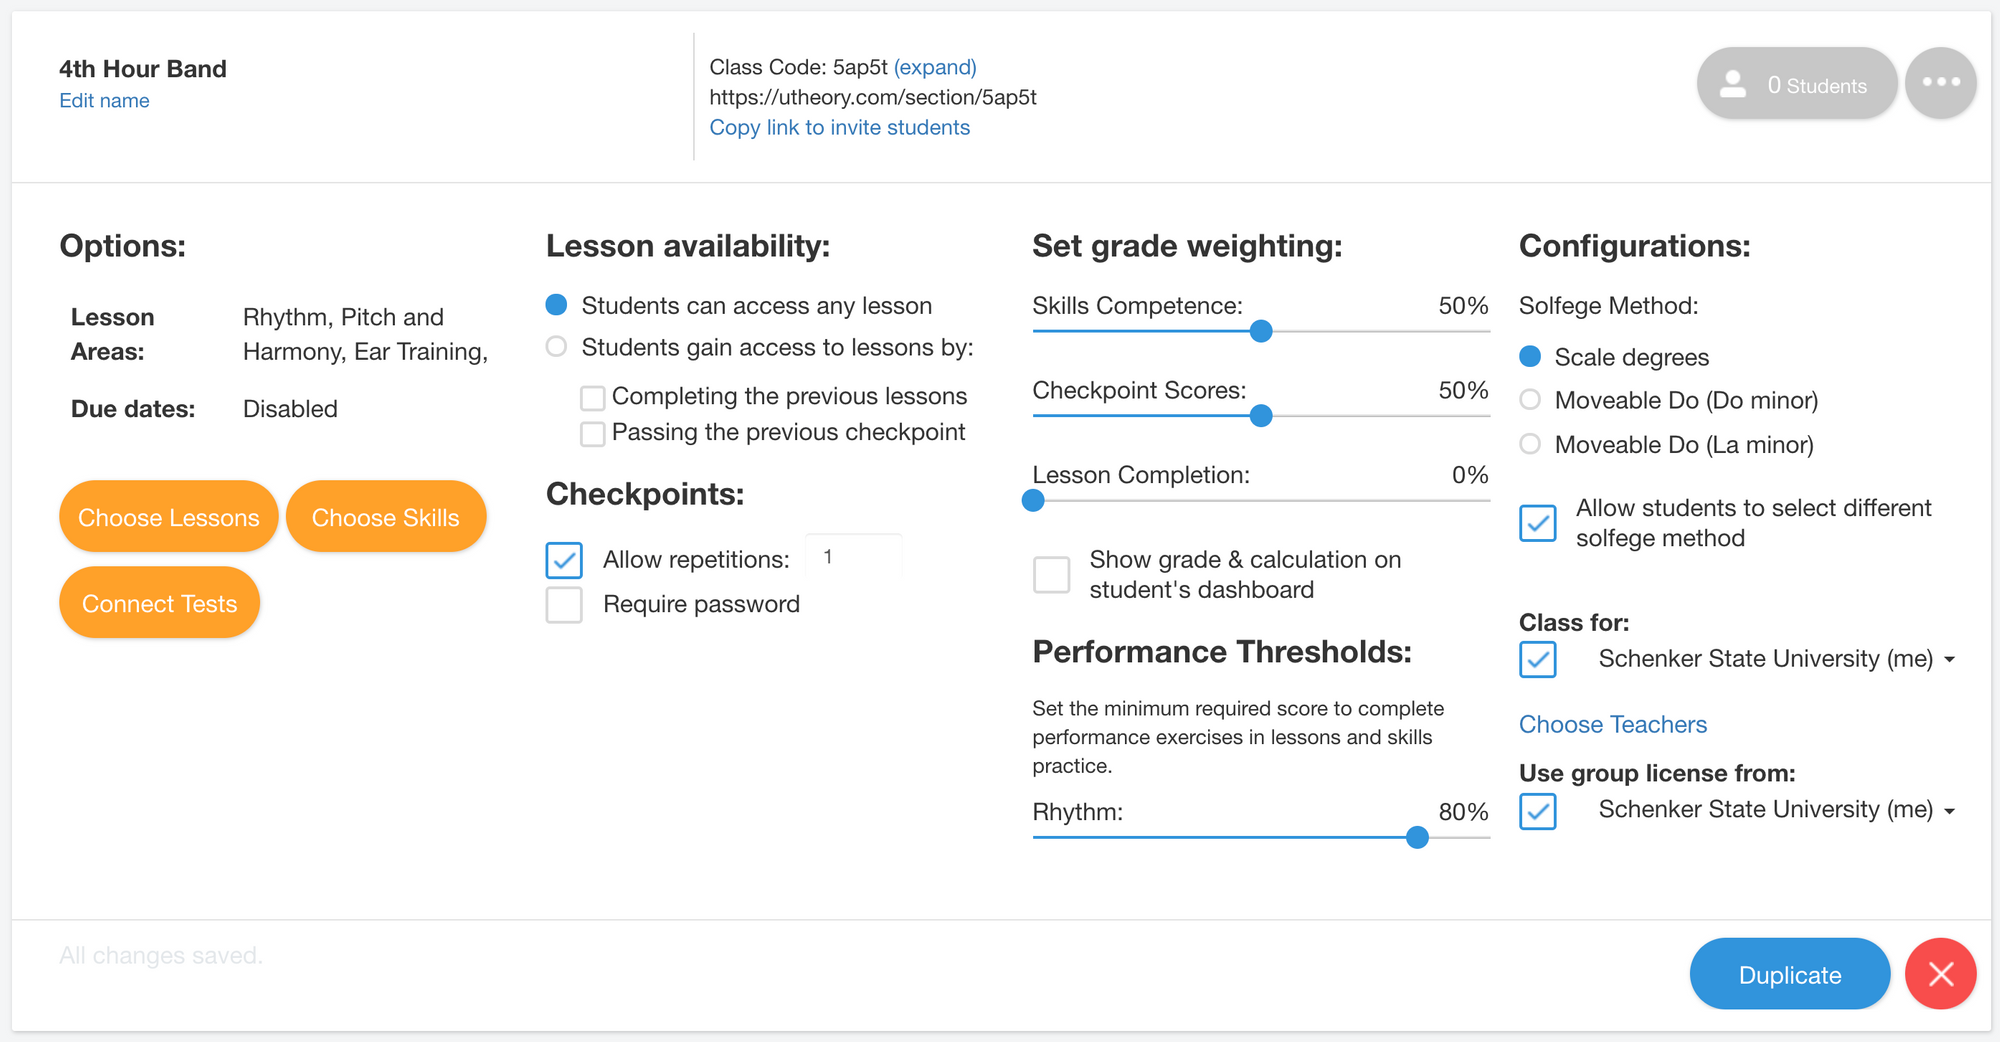 Image of Class Settings in the uTheory Teach Tab